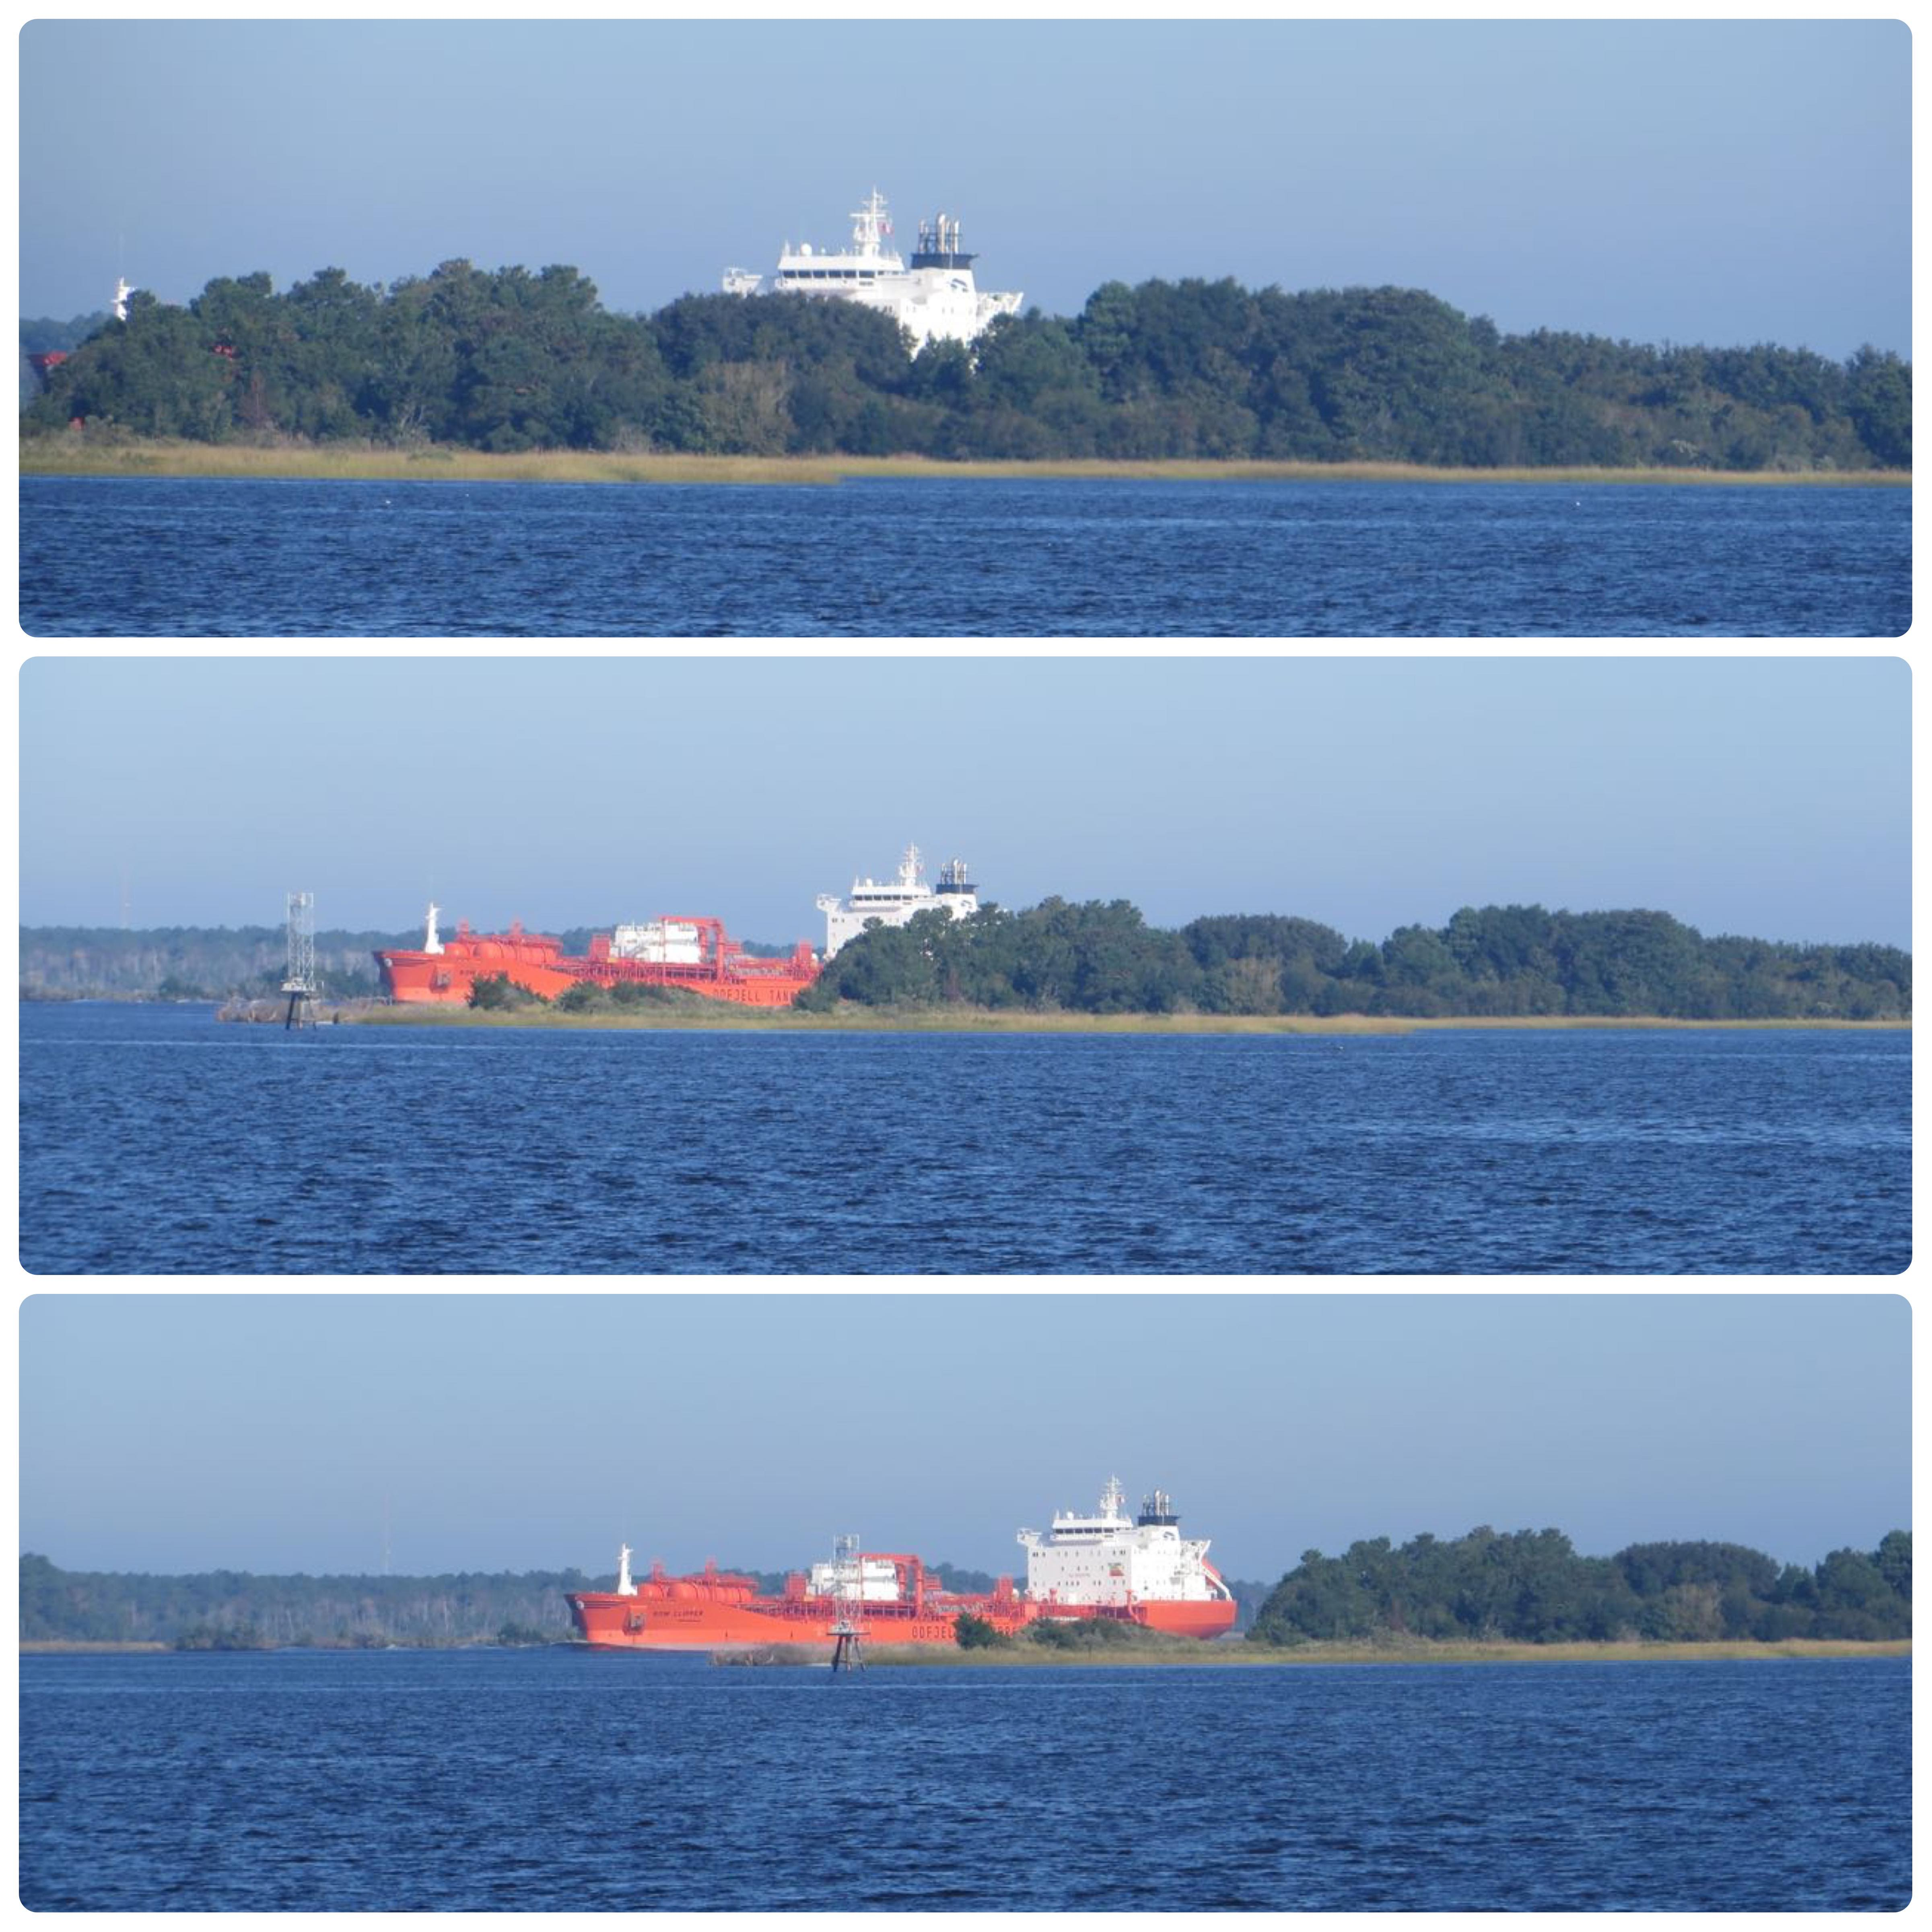 As we merged into the Cape Fear River, we could just see the top of a tanker over this little island.